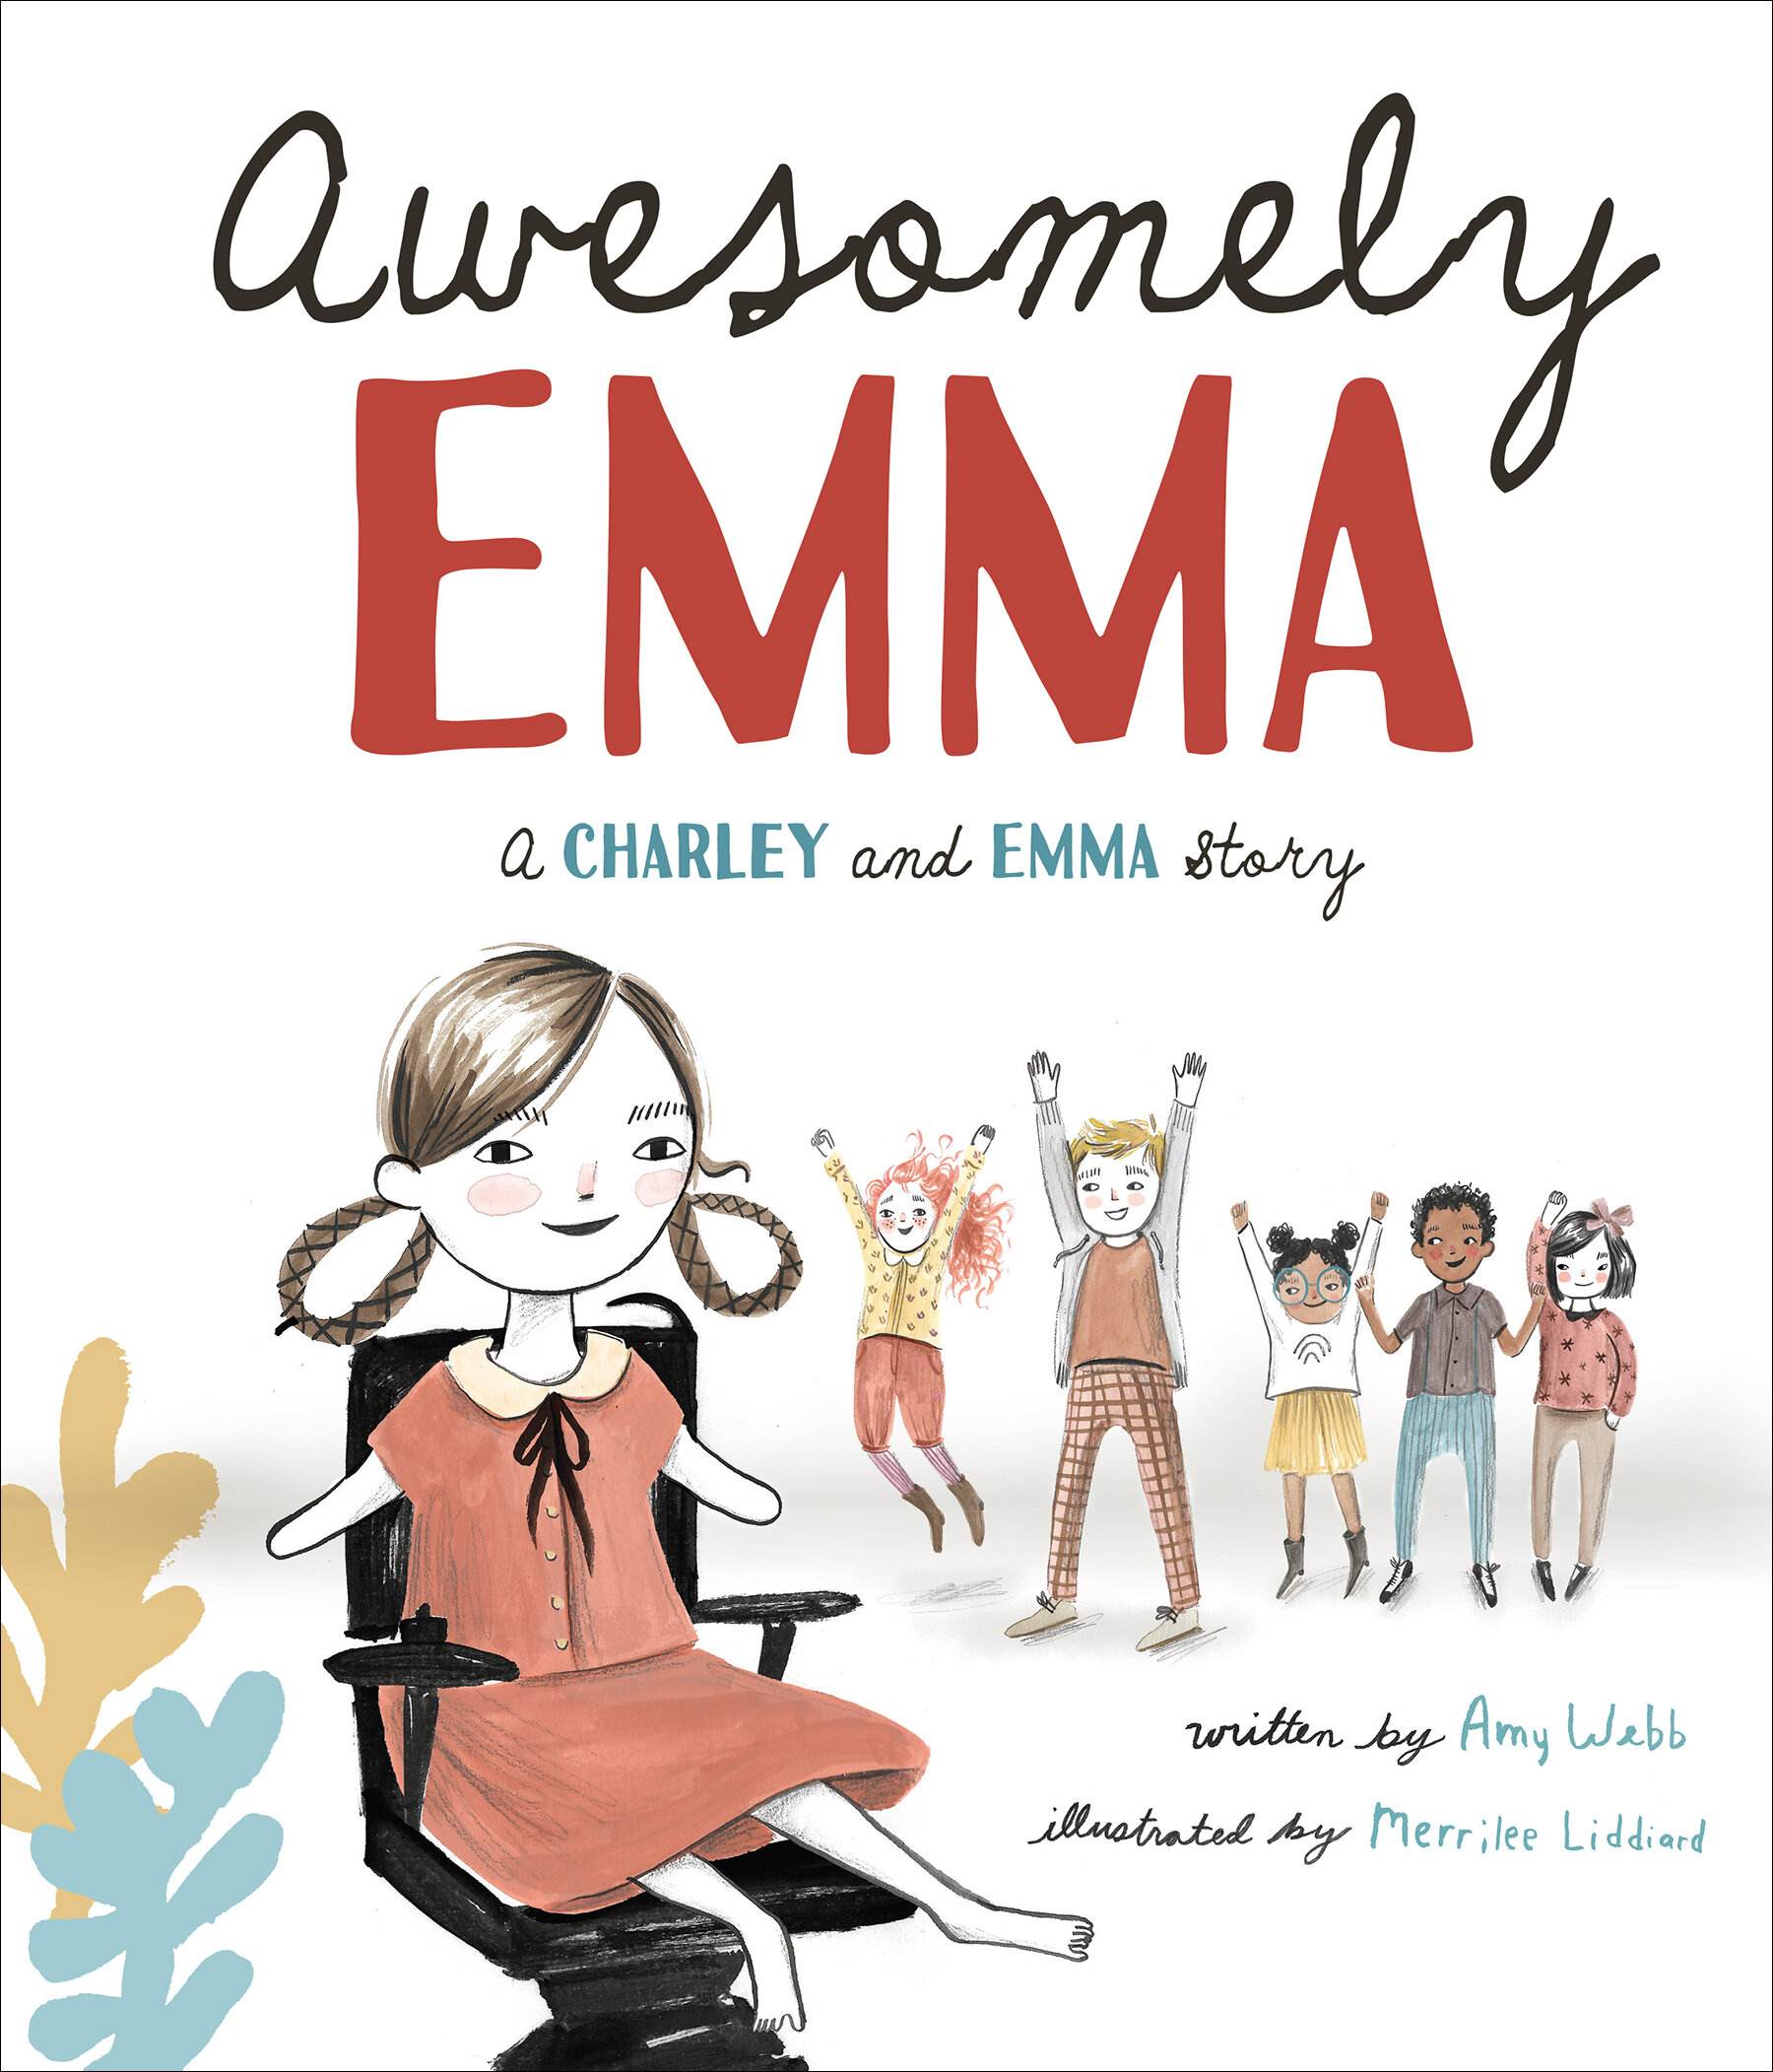 Awesomely Emma: A Charley and Emma Story